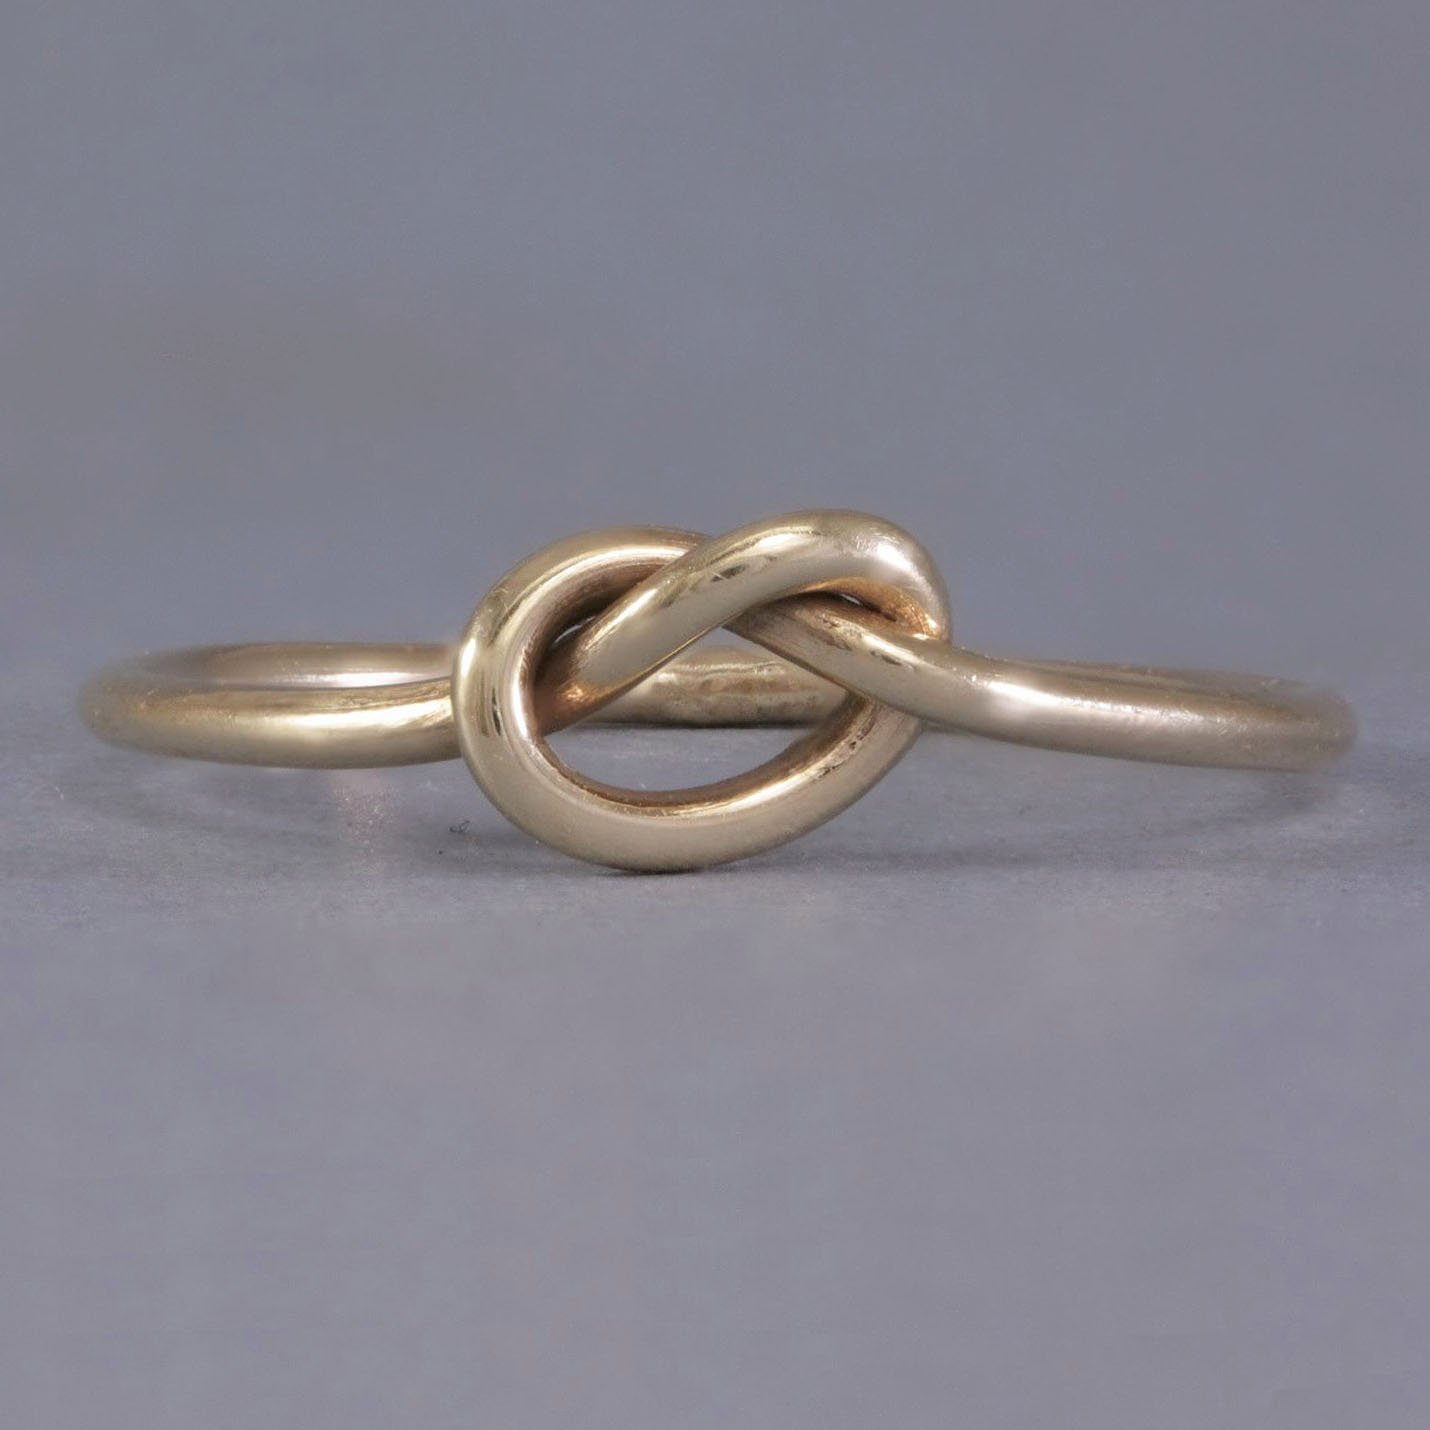 Tying The Knot Ring Solid Gold Knot Rings Promise Rings